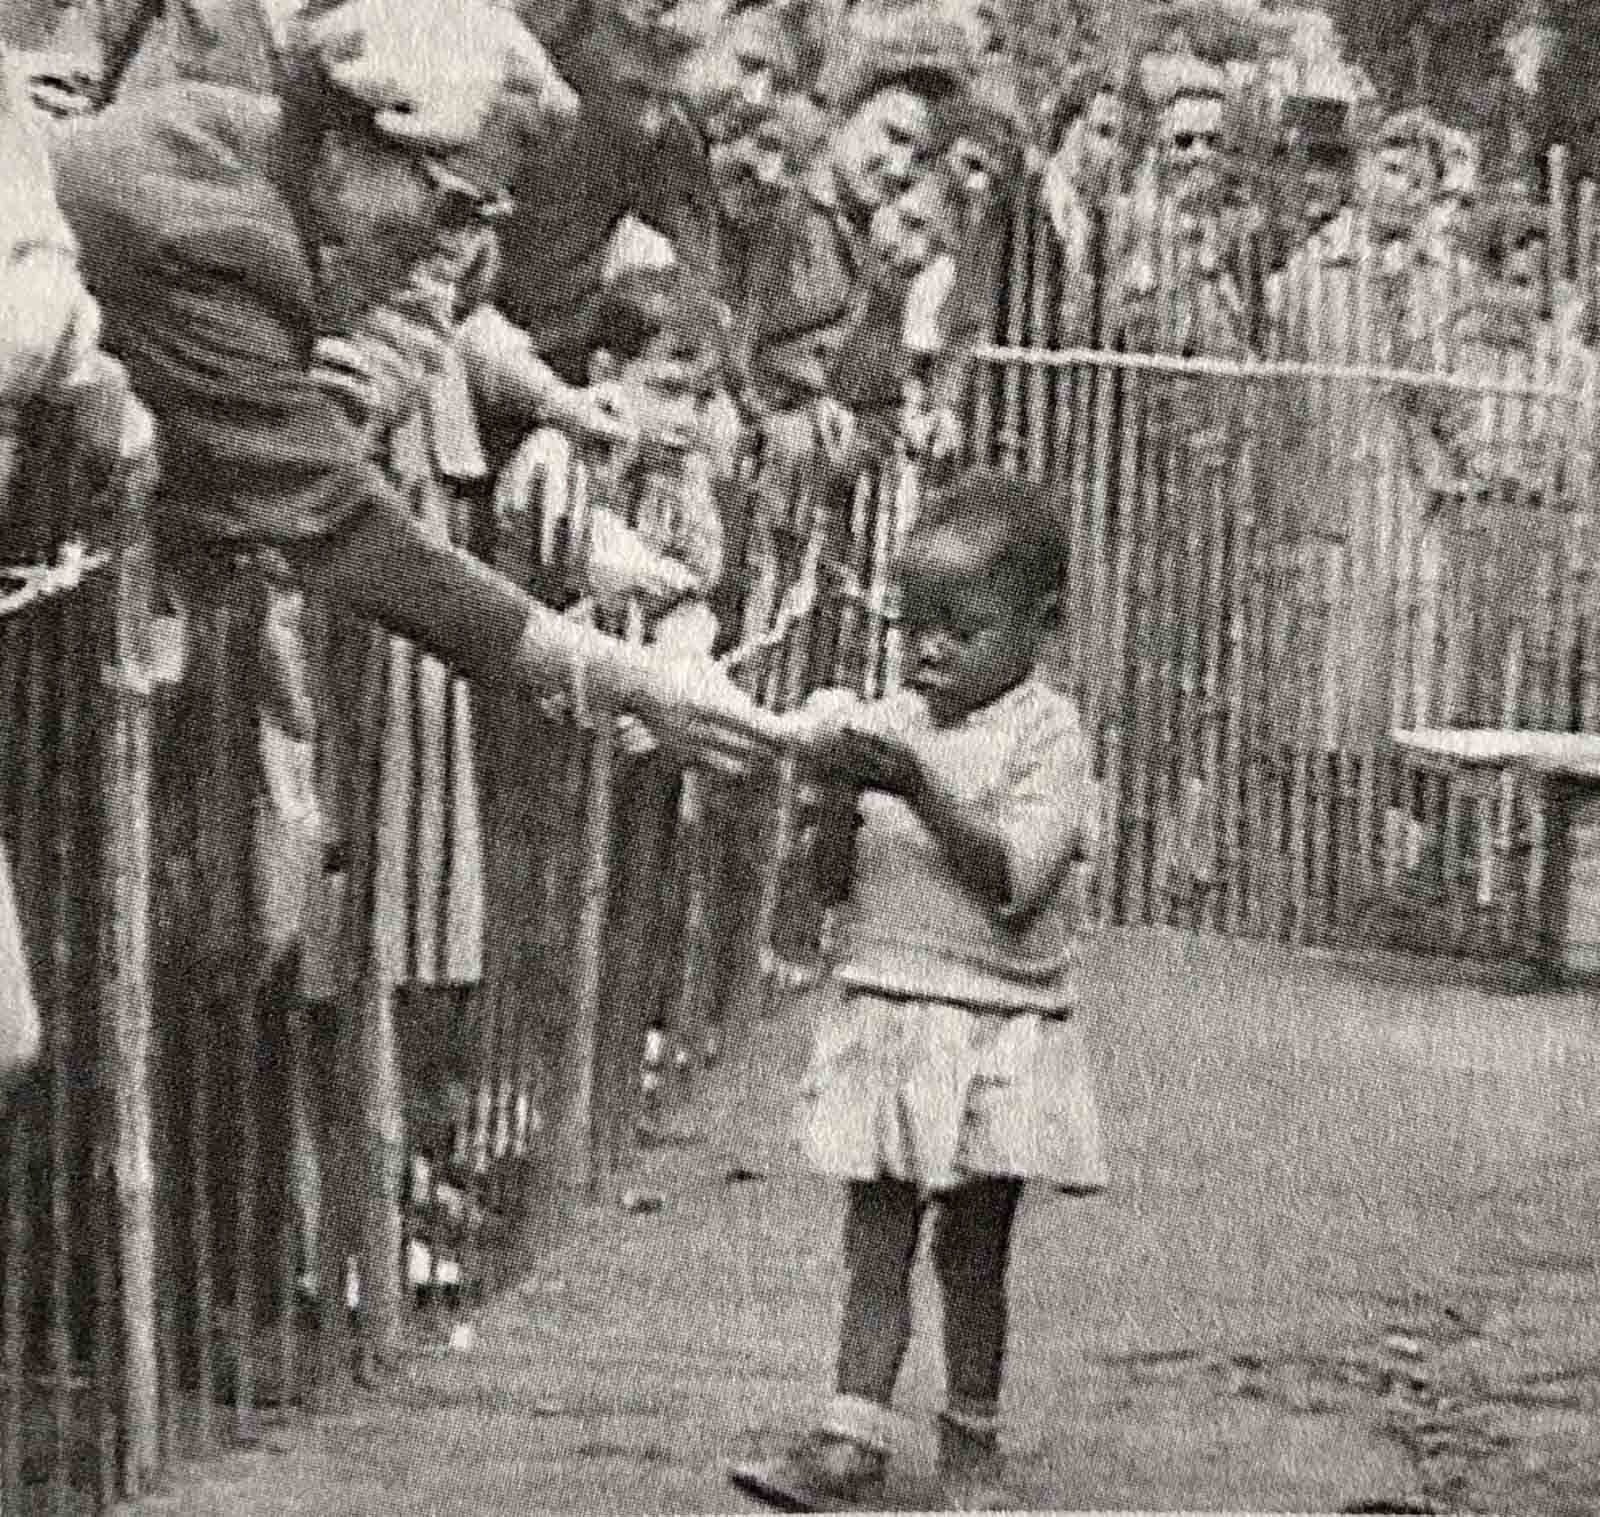 An African girl is shown at the 1958 Expo in Brussels, Belgium that featured a 'Congo Village' with visitors watching her from behind wooden fences.